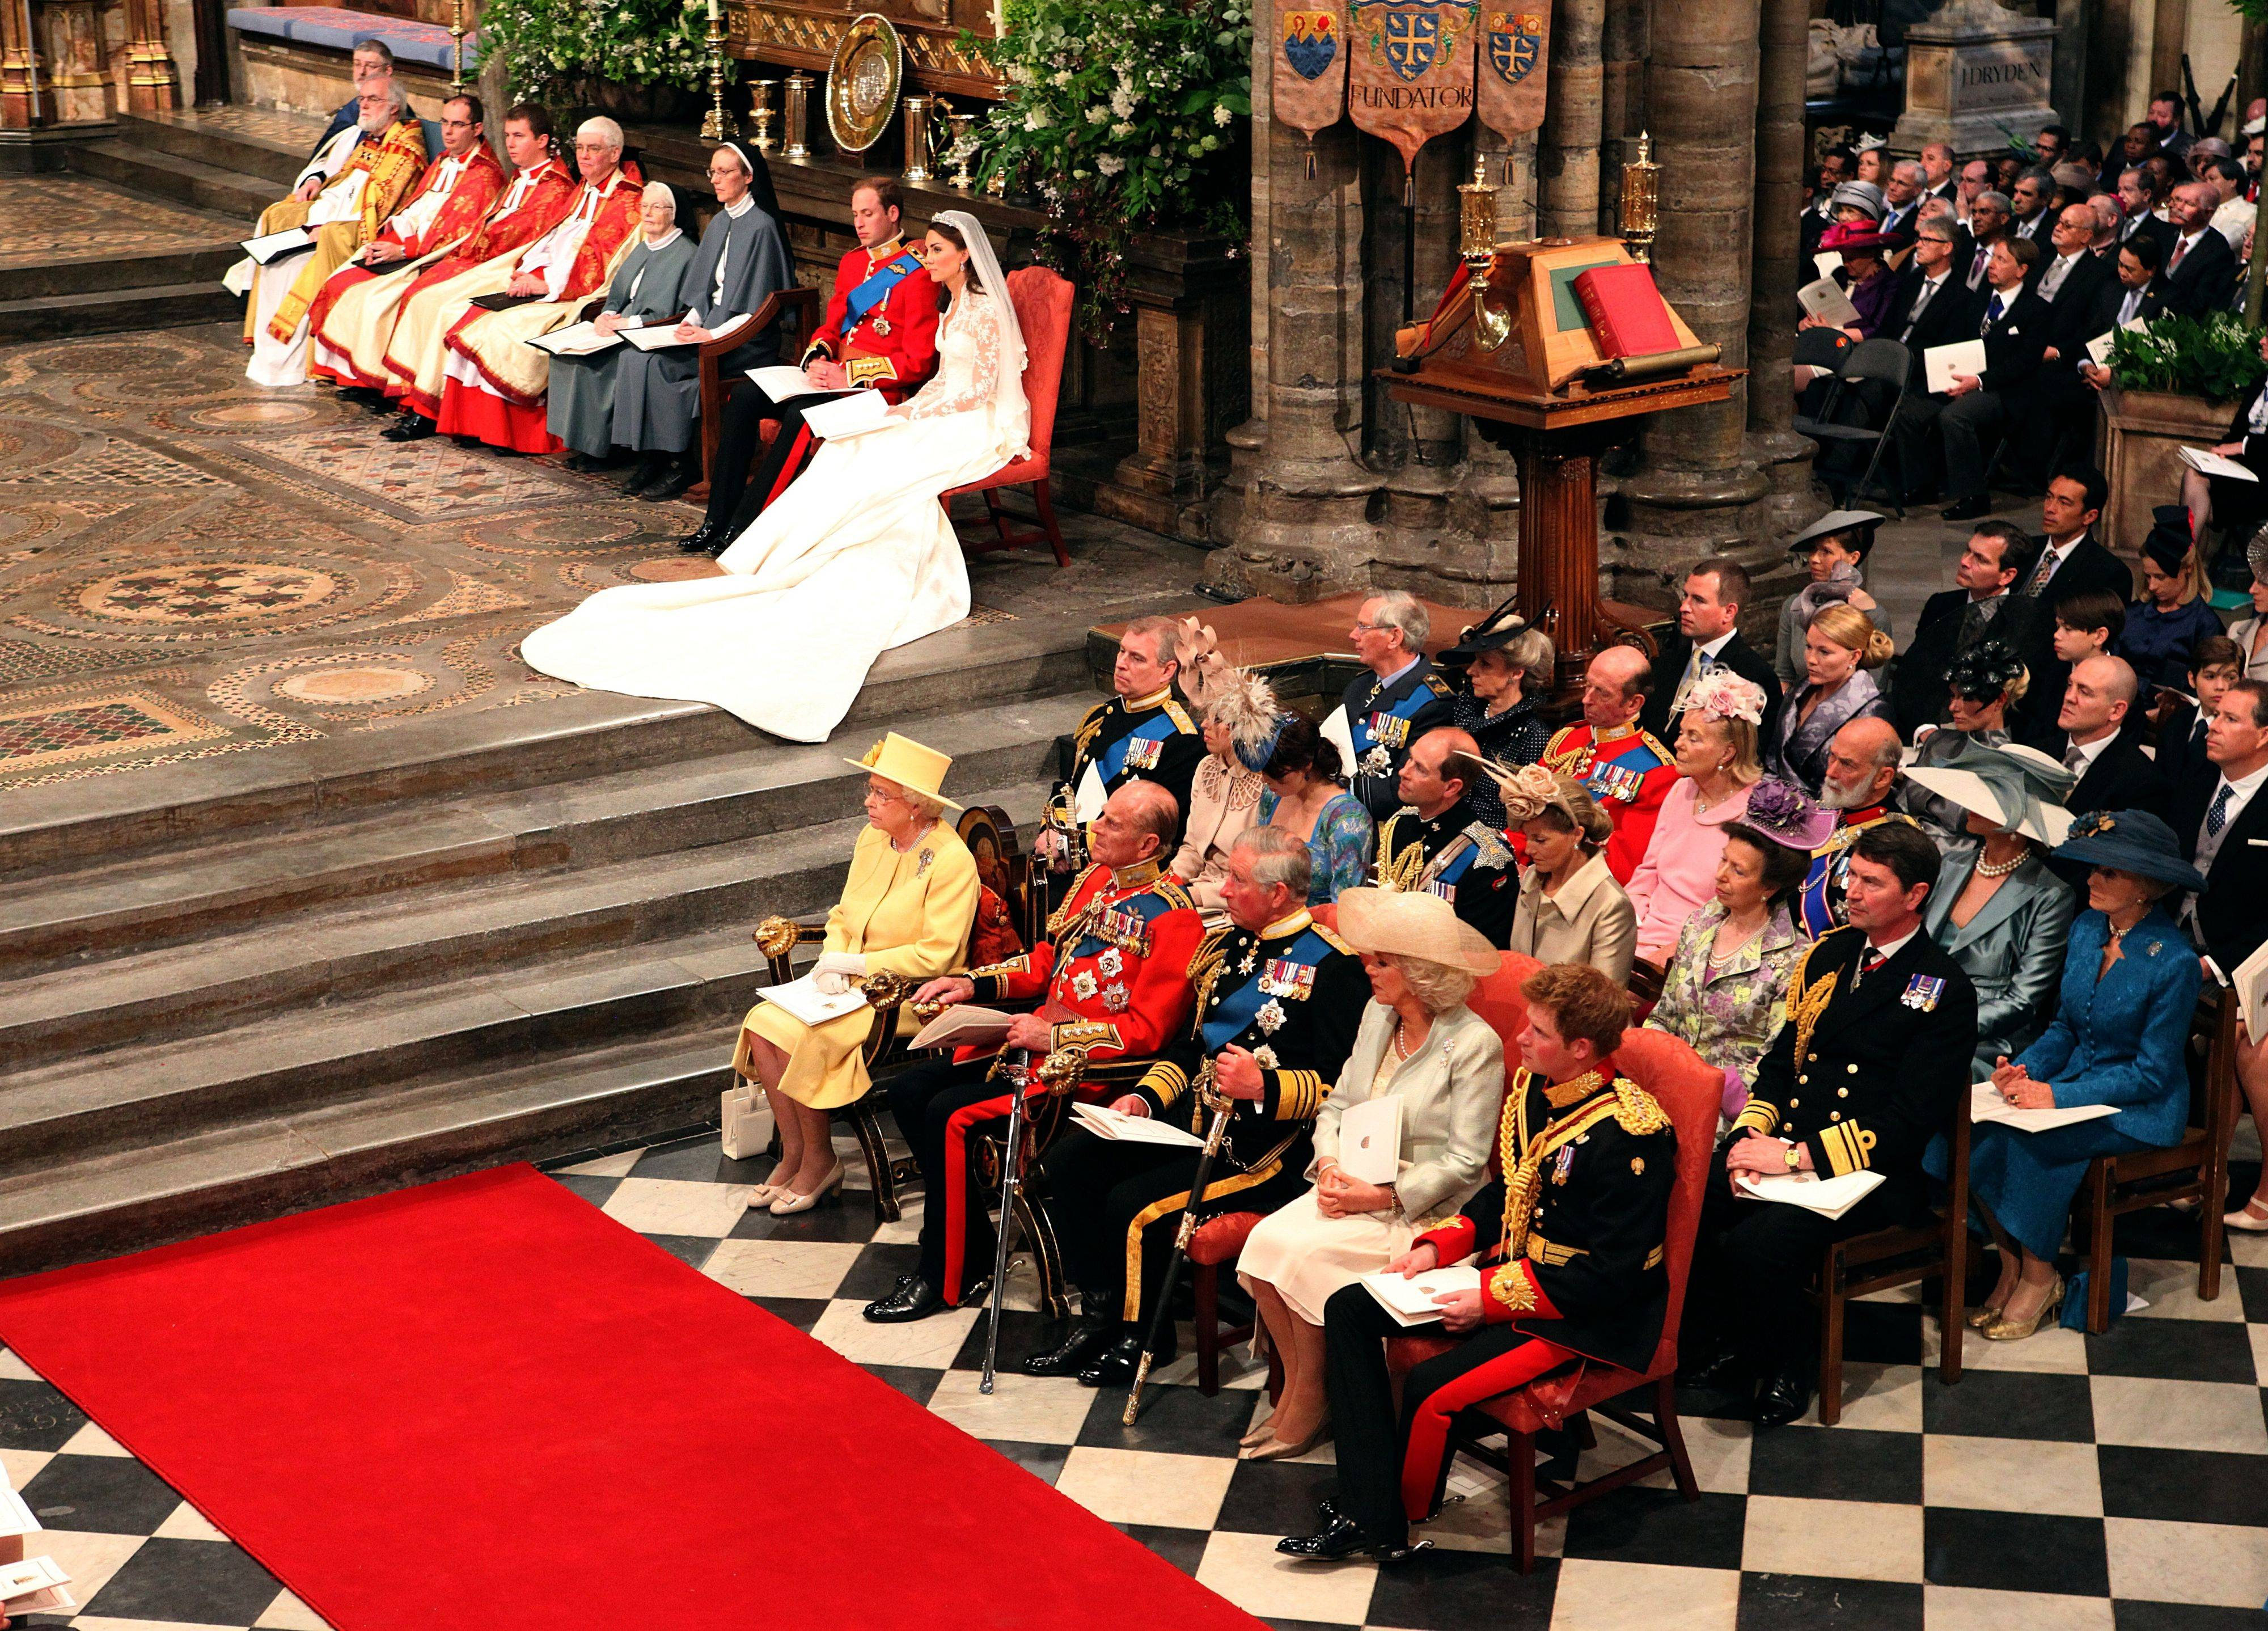 Reverend Richard Chartres, Lord Bishop of London, unseen, reads from the pulpit, watched by Prince William and his bride Kate Middleton, right, during their wedding service at London's Westminster Abbey.